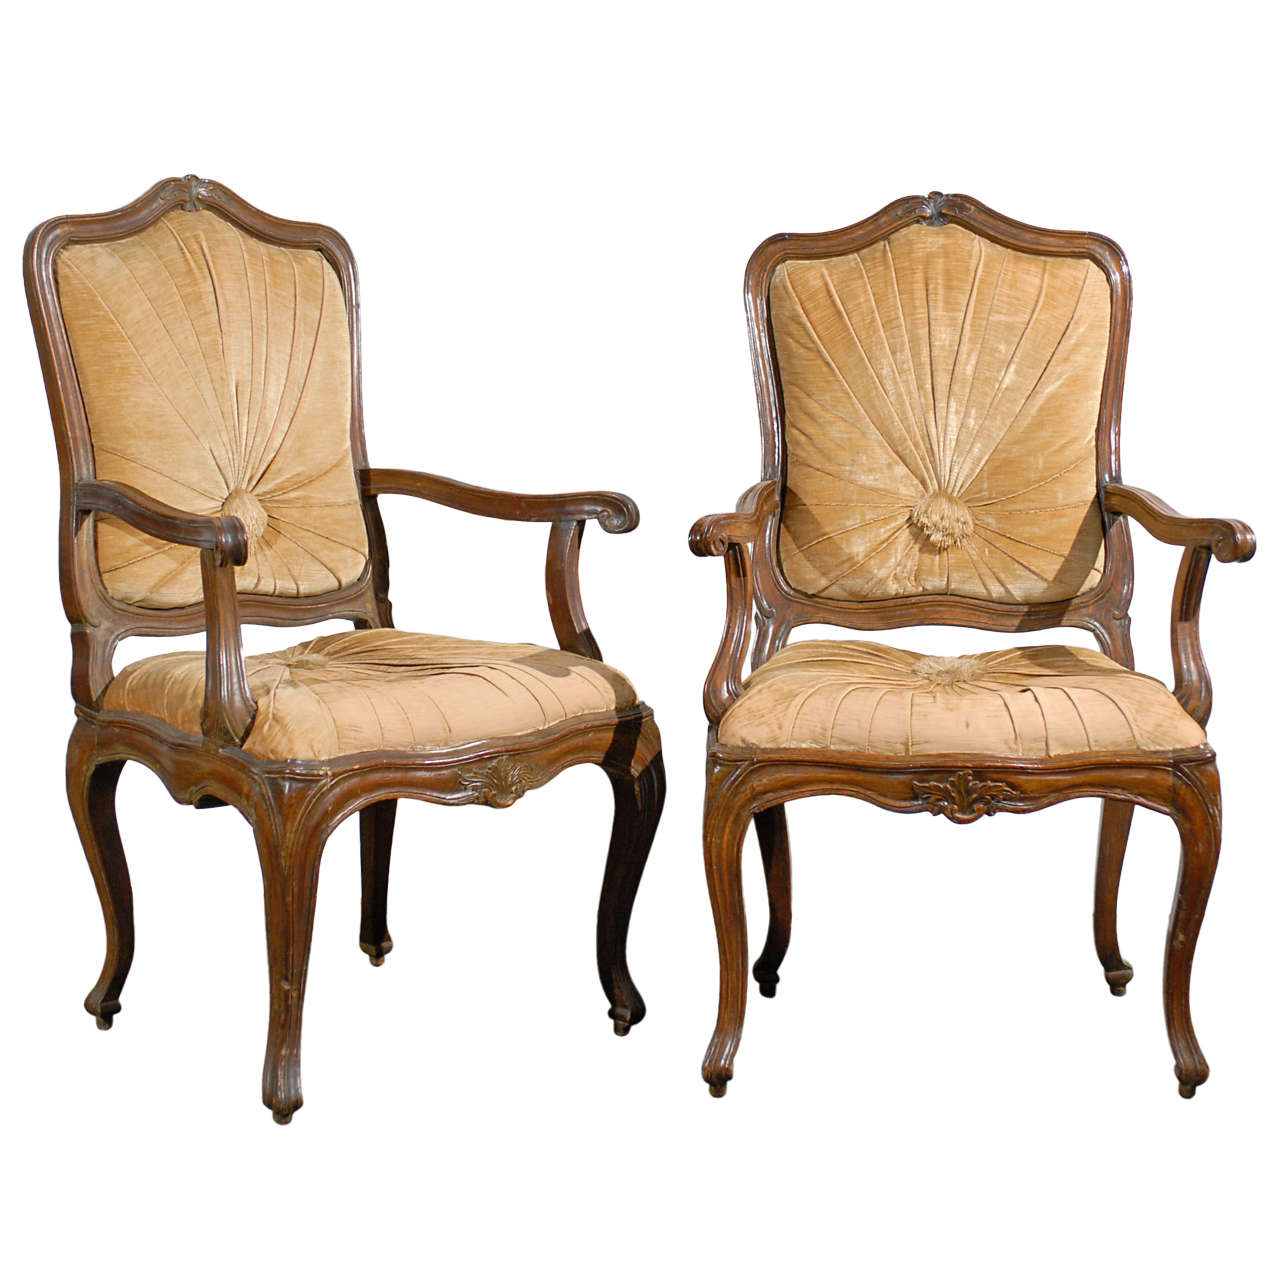 A Pair of 19th Century Italian Walnut Chairs For Sale at